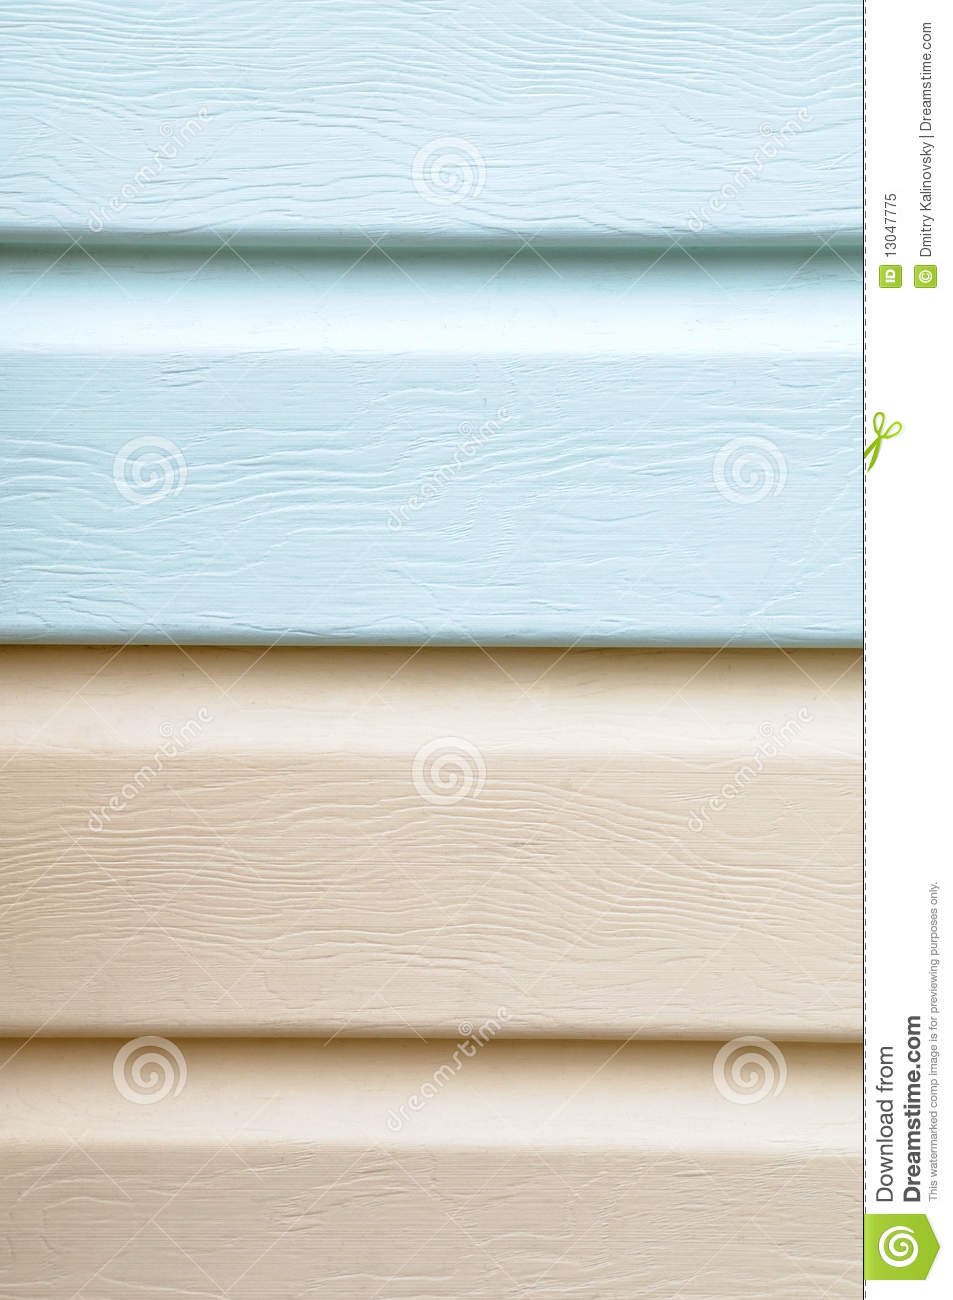 Vinyl Siding Design Ideas